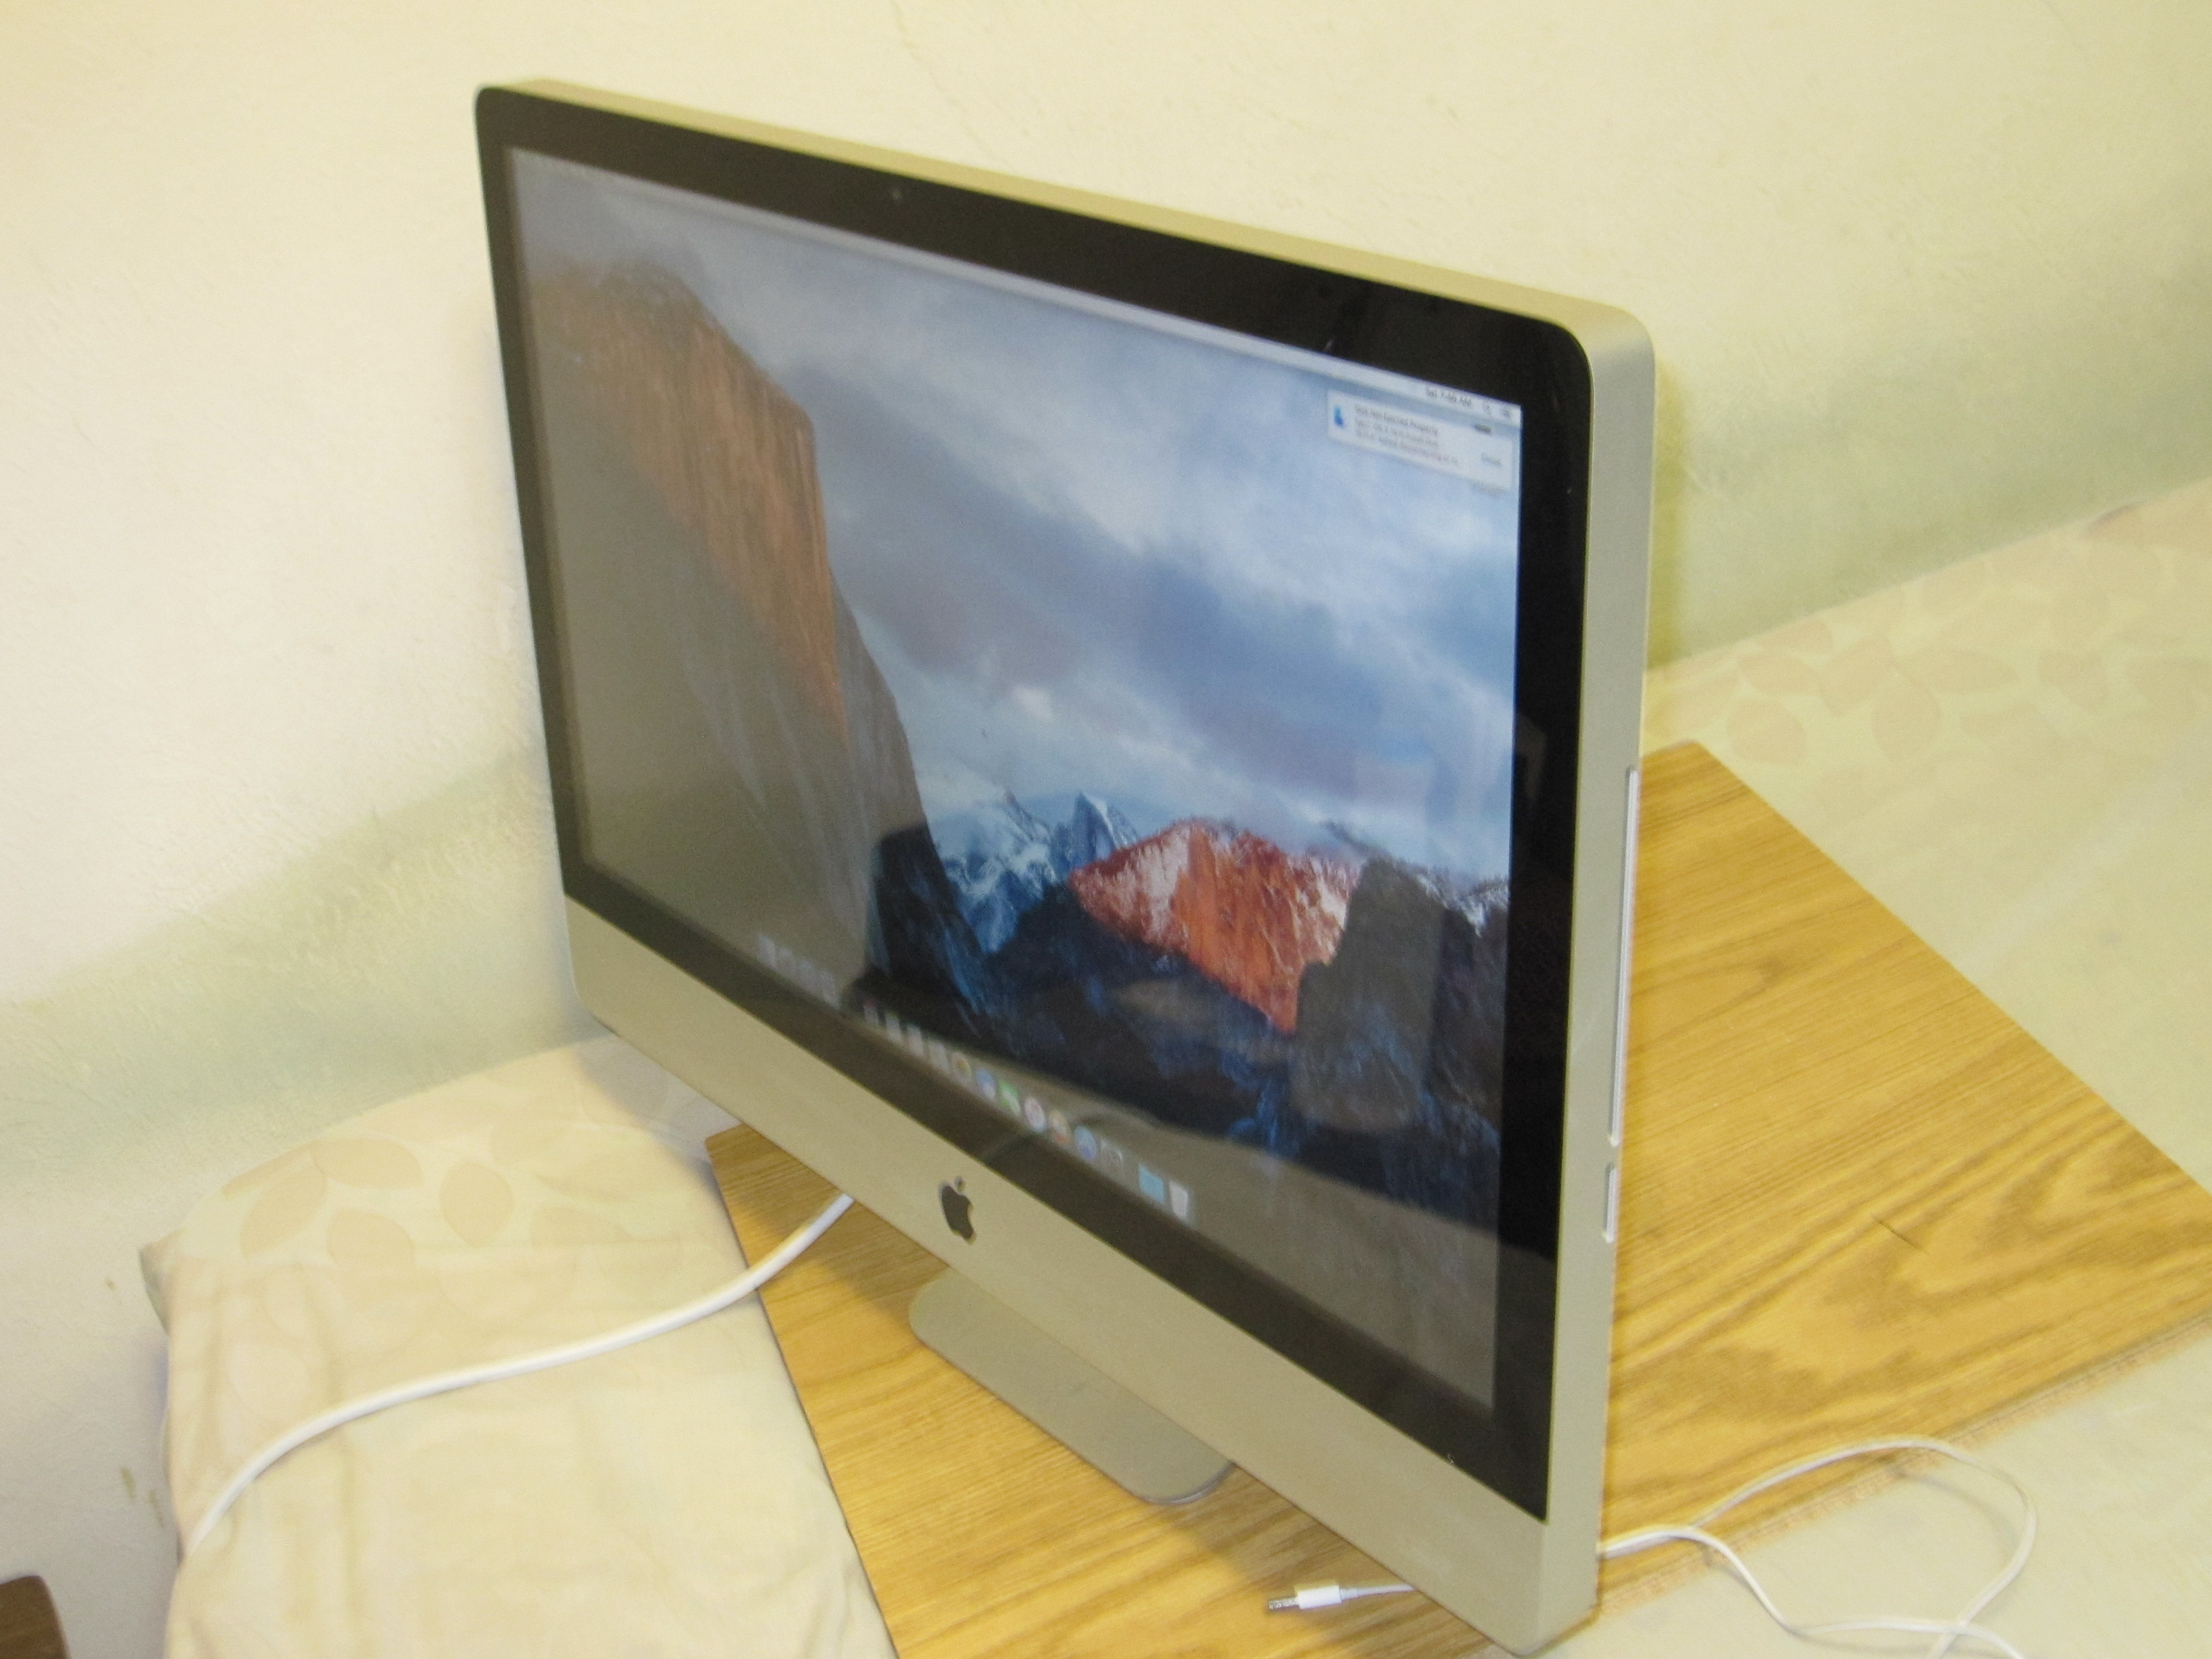 imac 2.66 ghz intel core 2 duo ssd upgrade